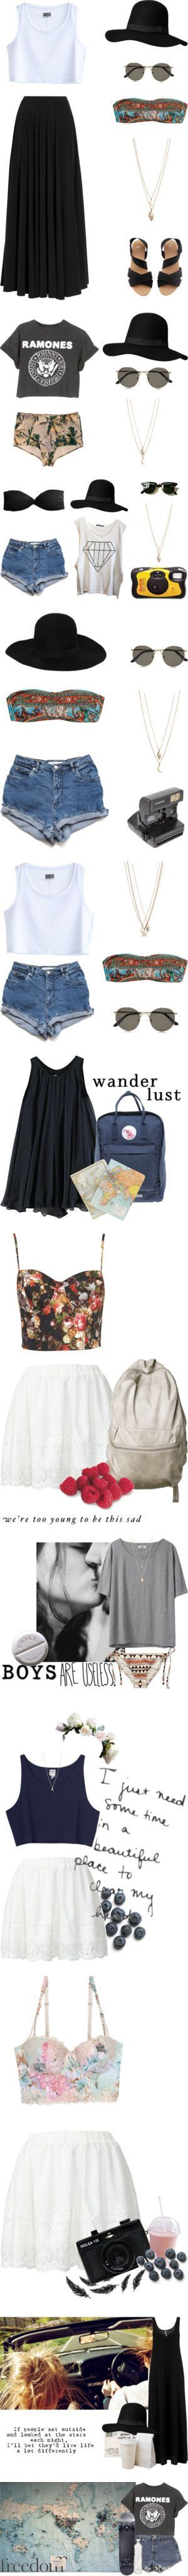 There is something so appealing about these outfits. Some girly and sweet, innocent. And some rebellious and unapologetically 90's grunge wonderfulness. I'd rock them all.: